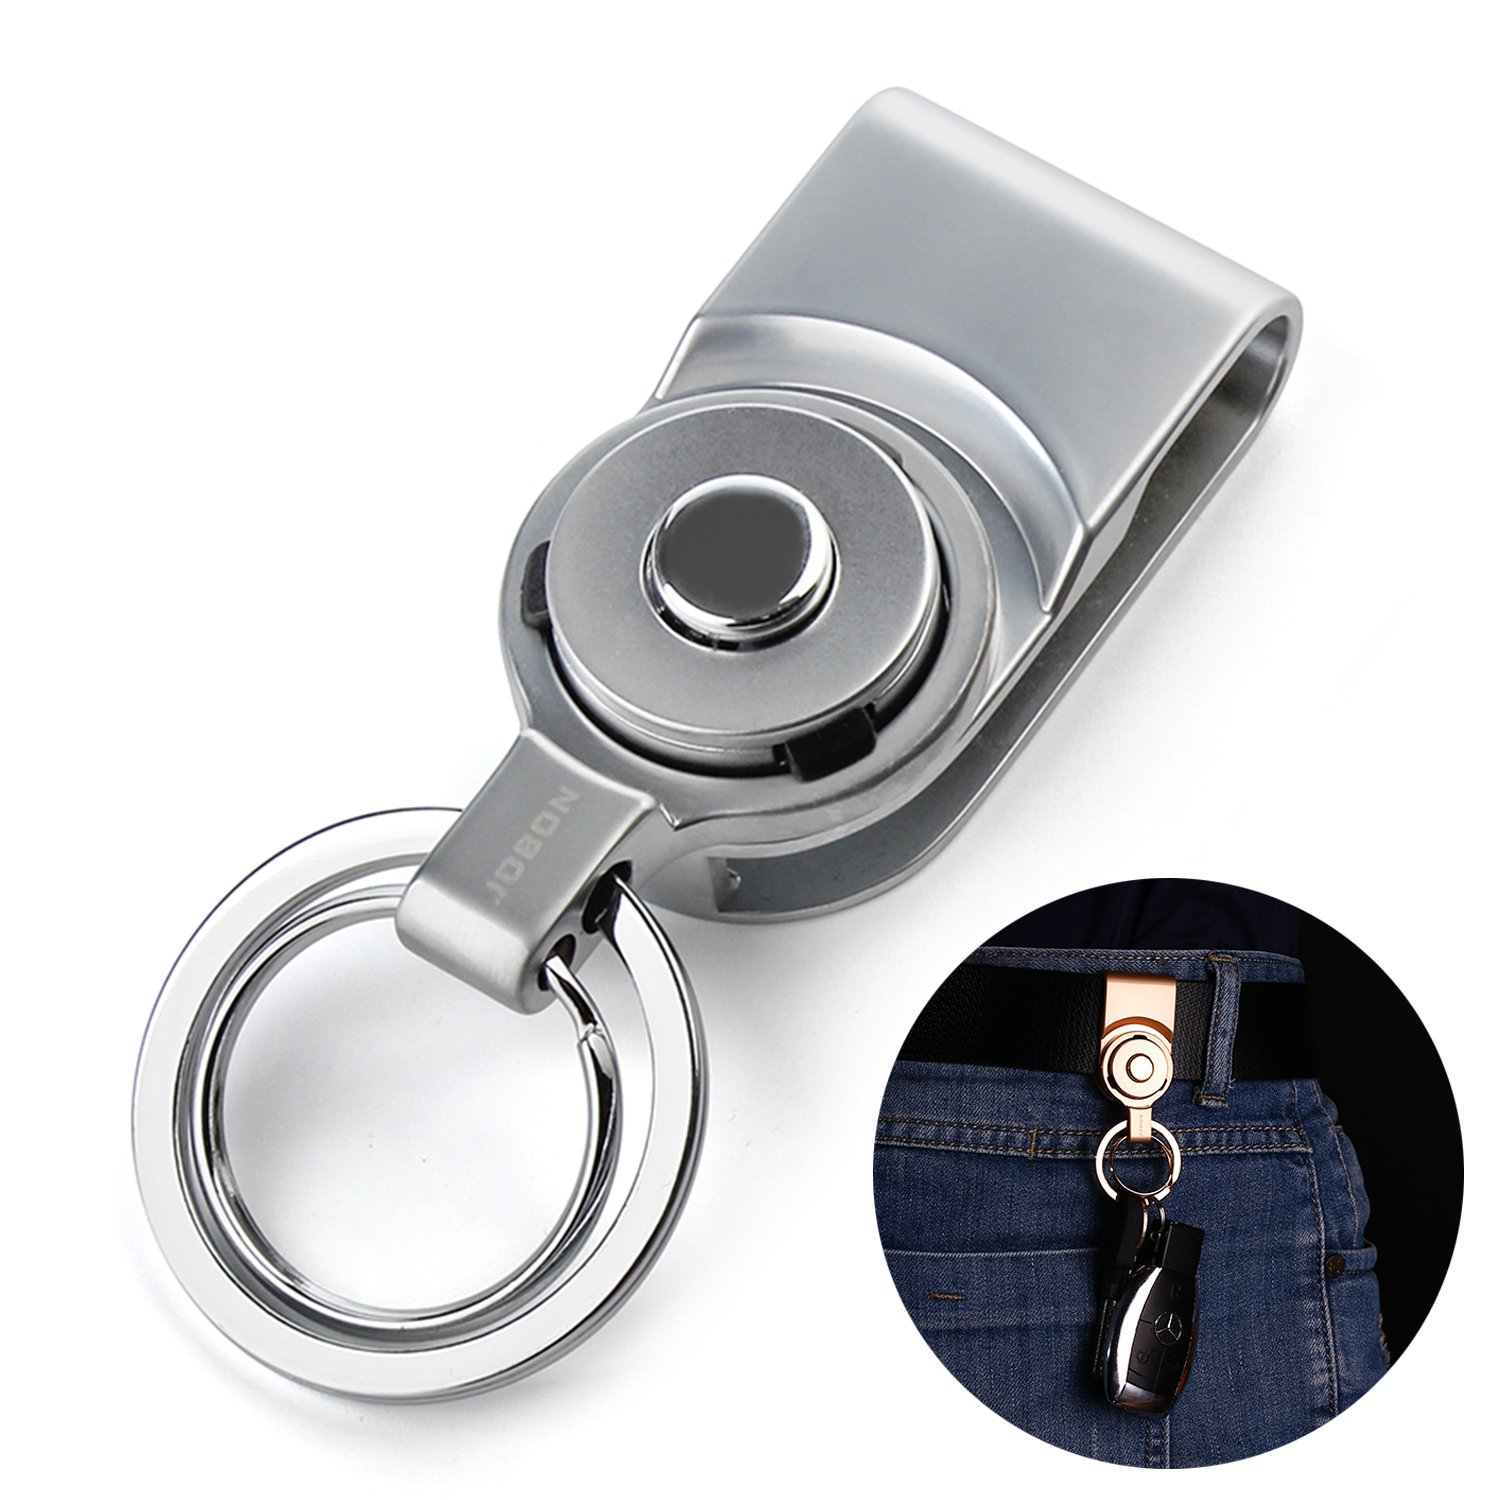 Bidear Belt Clips Keychains with Unique Press Button Metal Key Chain Rings for Cars(Silver)